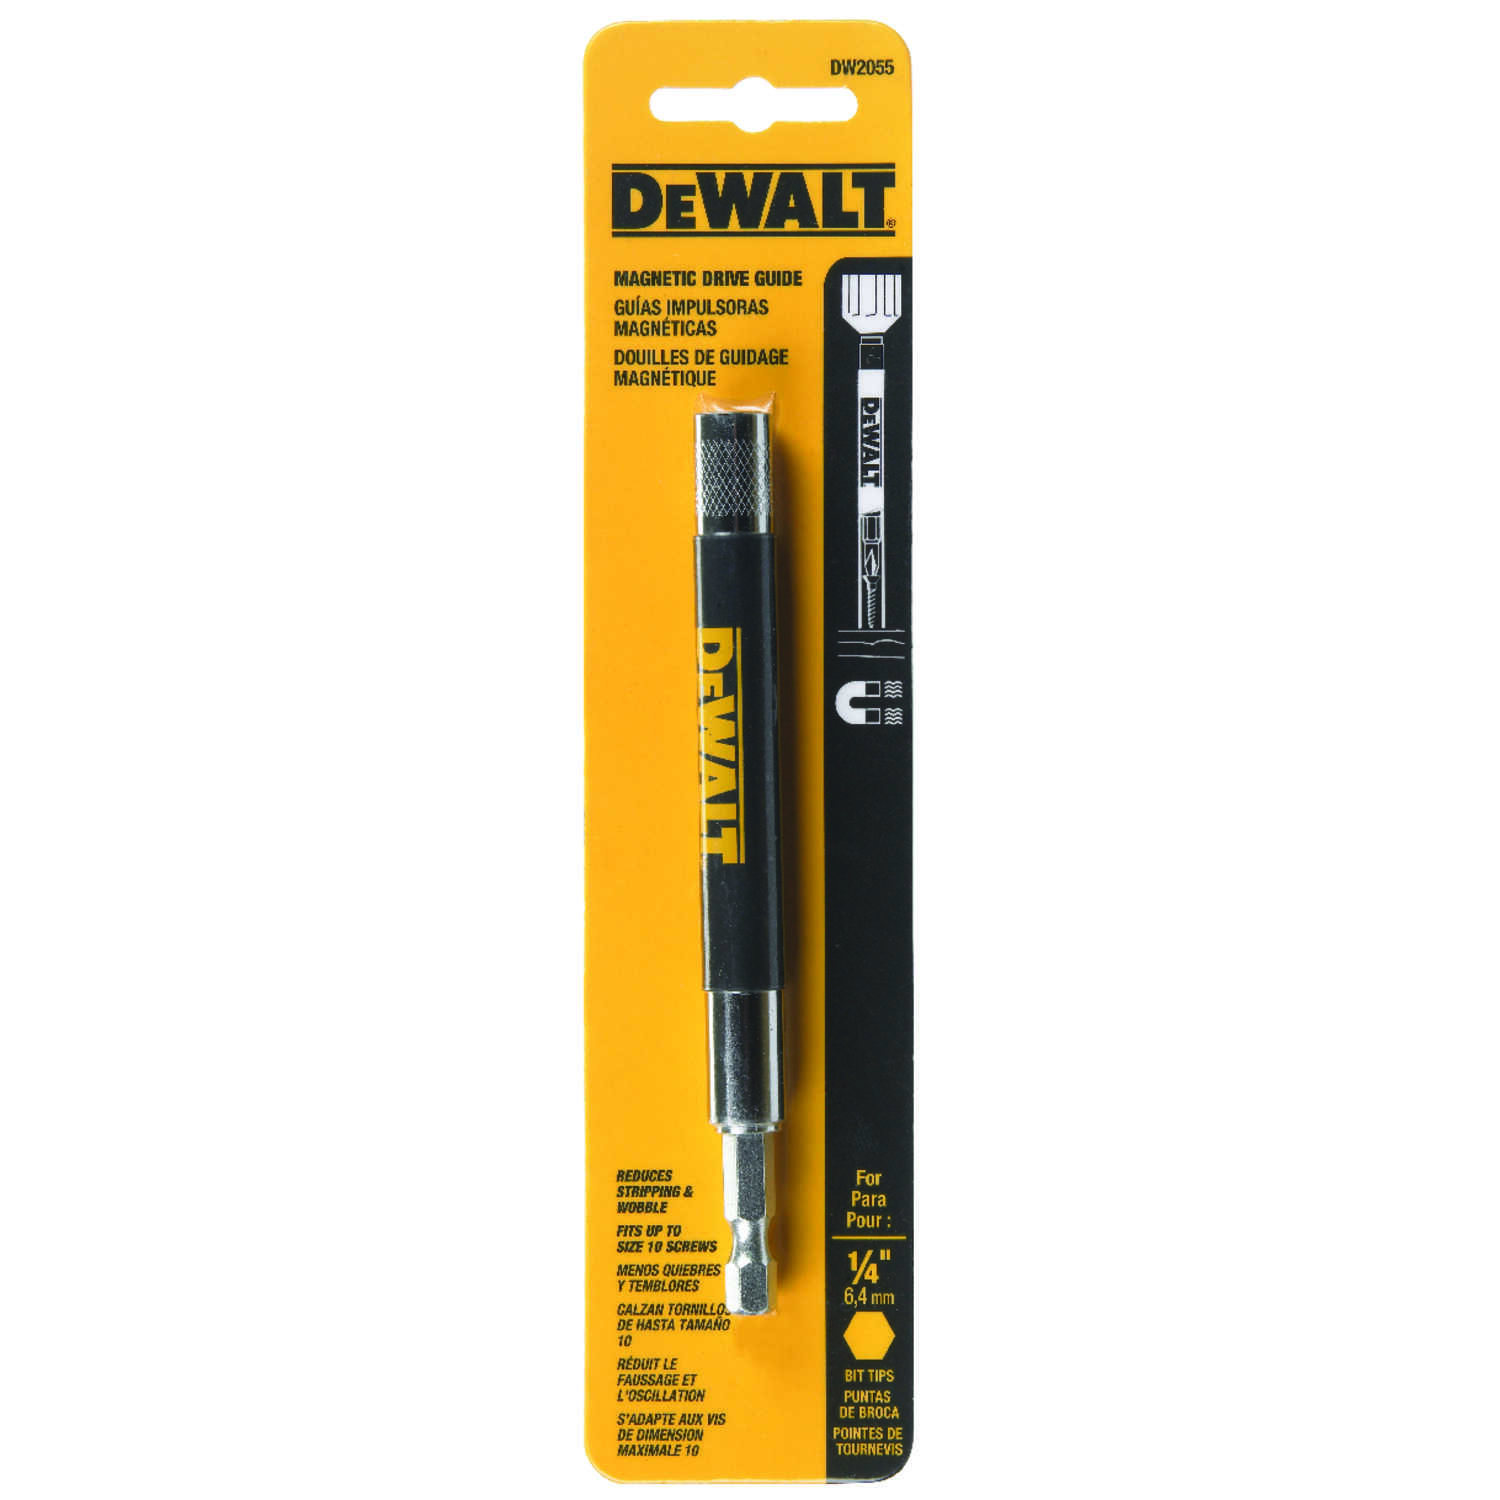 DeWalt  1/4 in.  x 6 in. L Drive Guide  1/4 in. 10 pc. Heat-Treated Steel